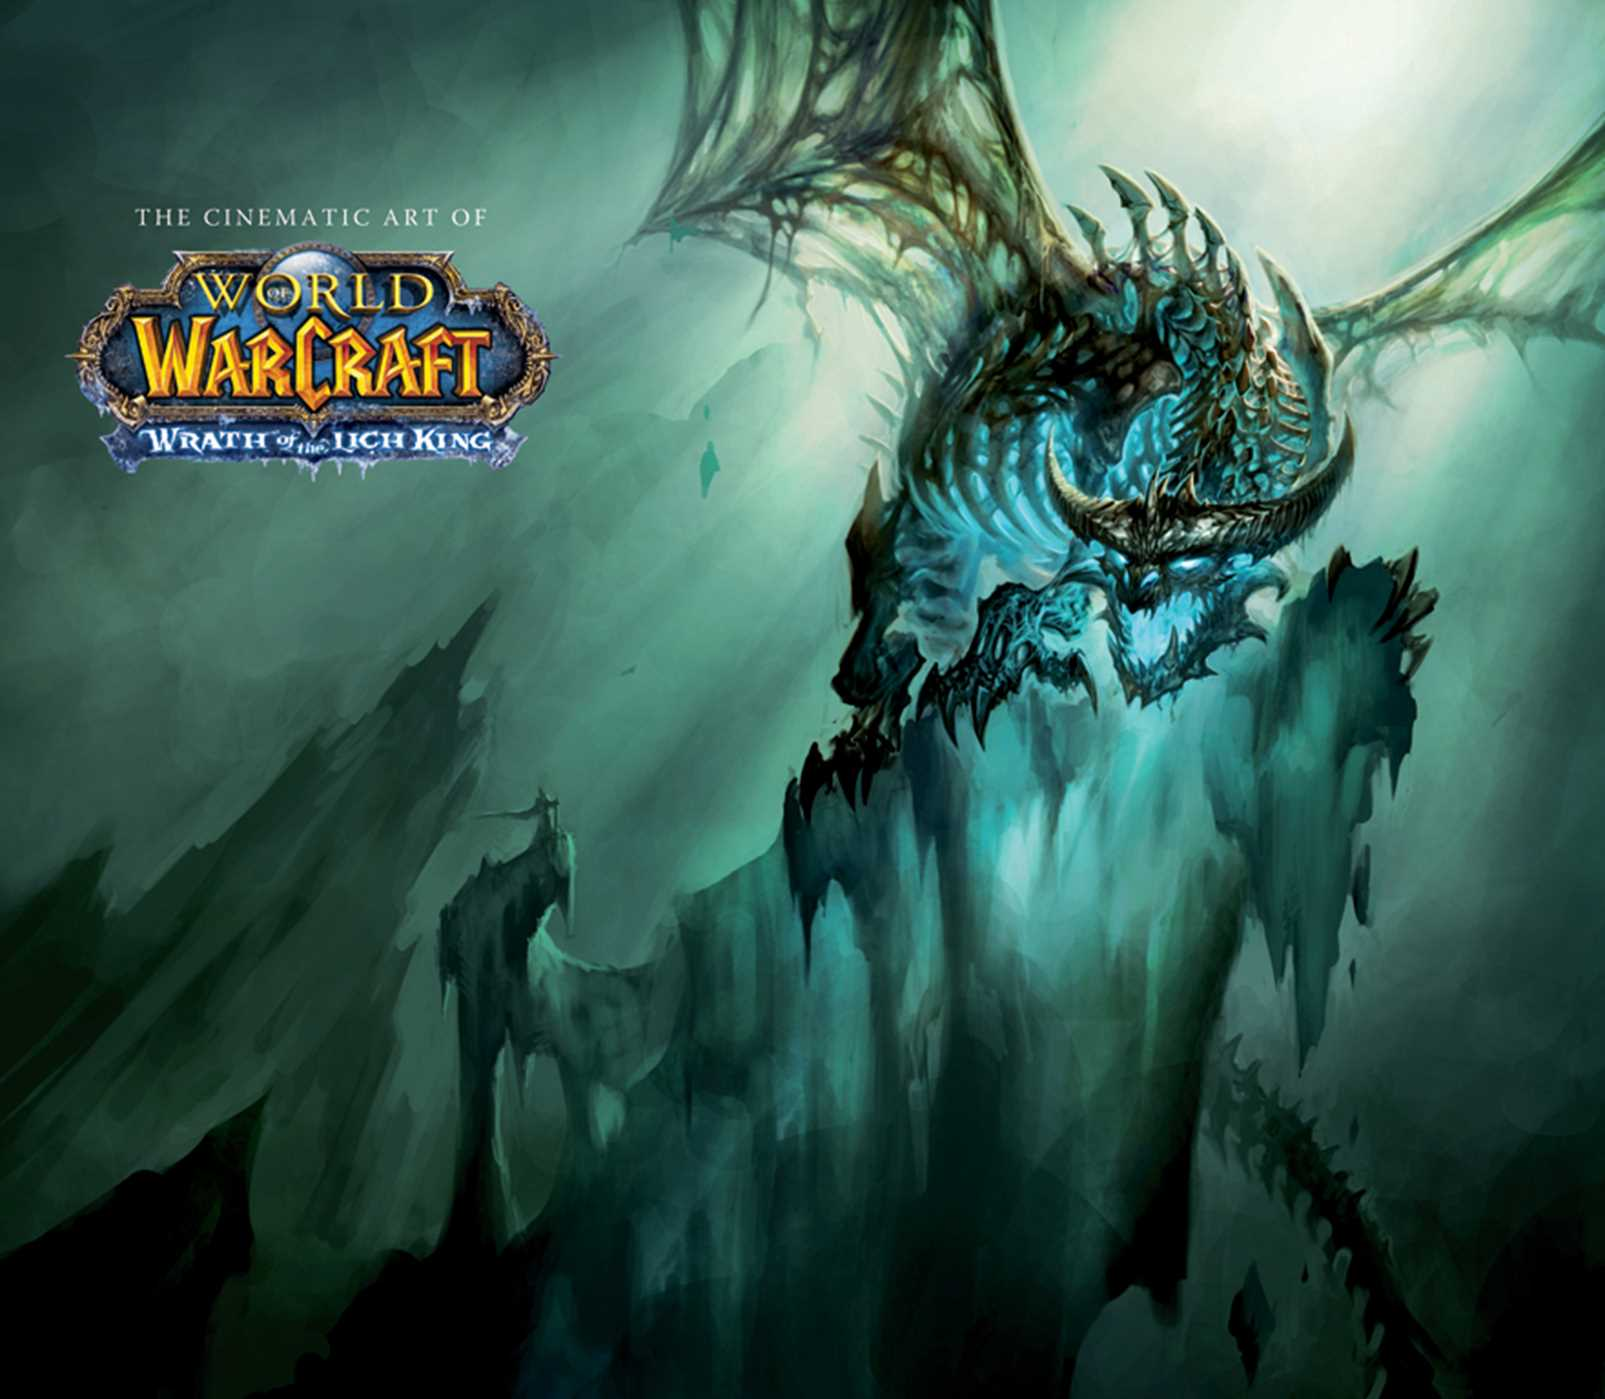 The cinematic art of world of warcraft book by blizzard the cinematic art of world of warcraft 9781608872084 hr gumiabroncs Choice Image